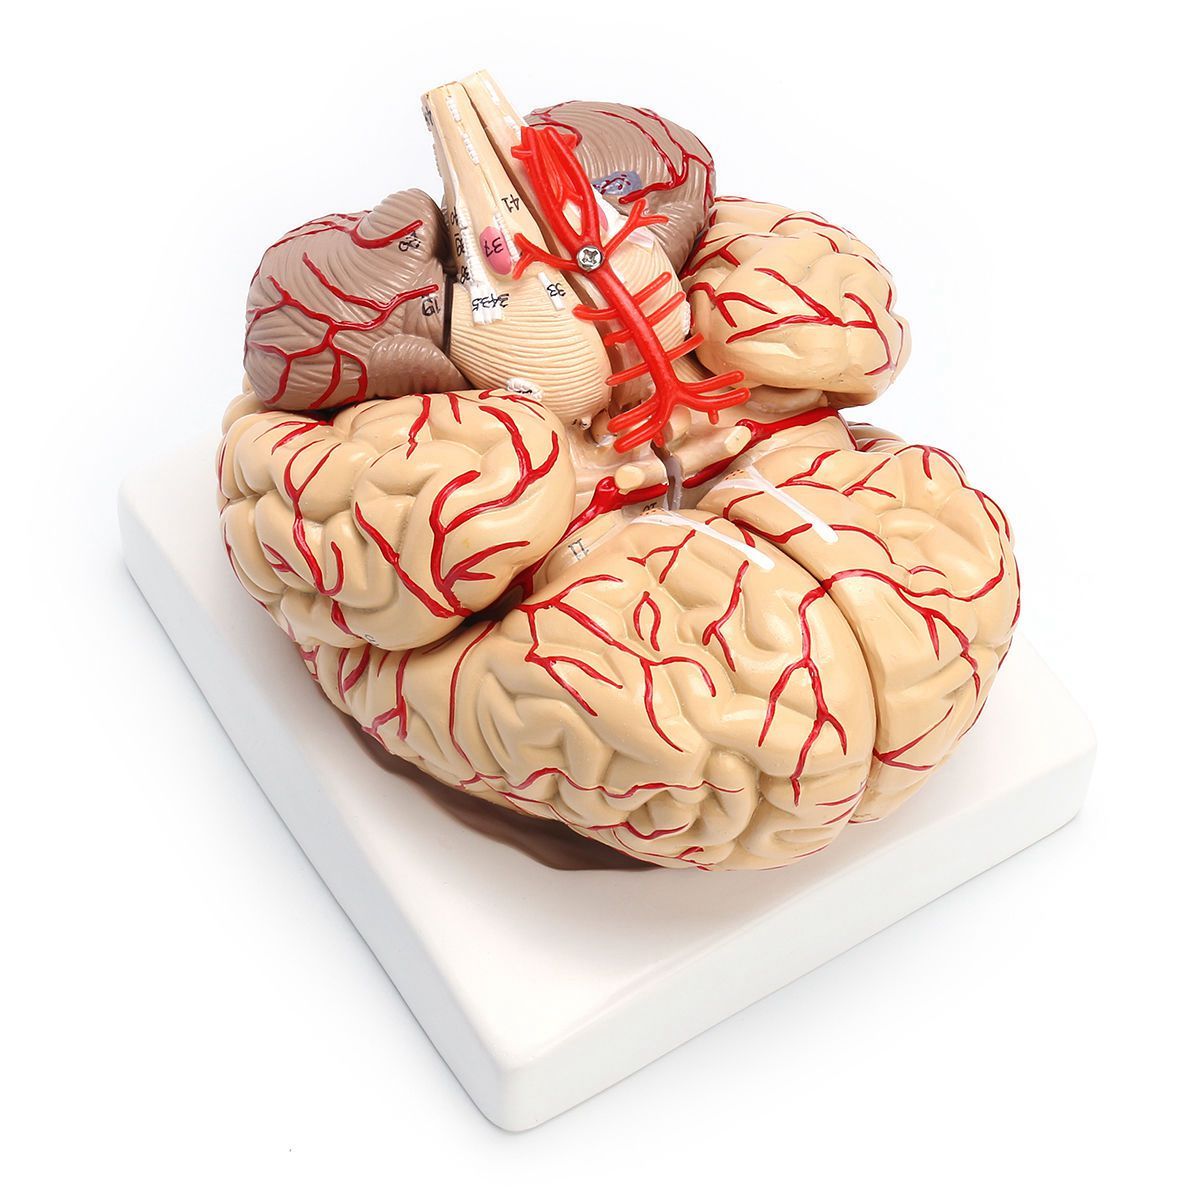 Hot Sale 1 1 Life Size Human Anatomical Brain Pro Dissection